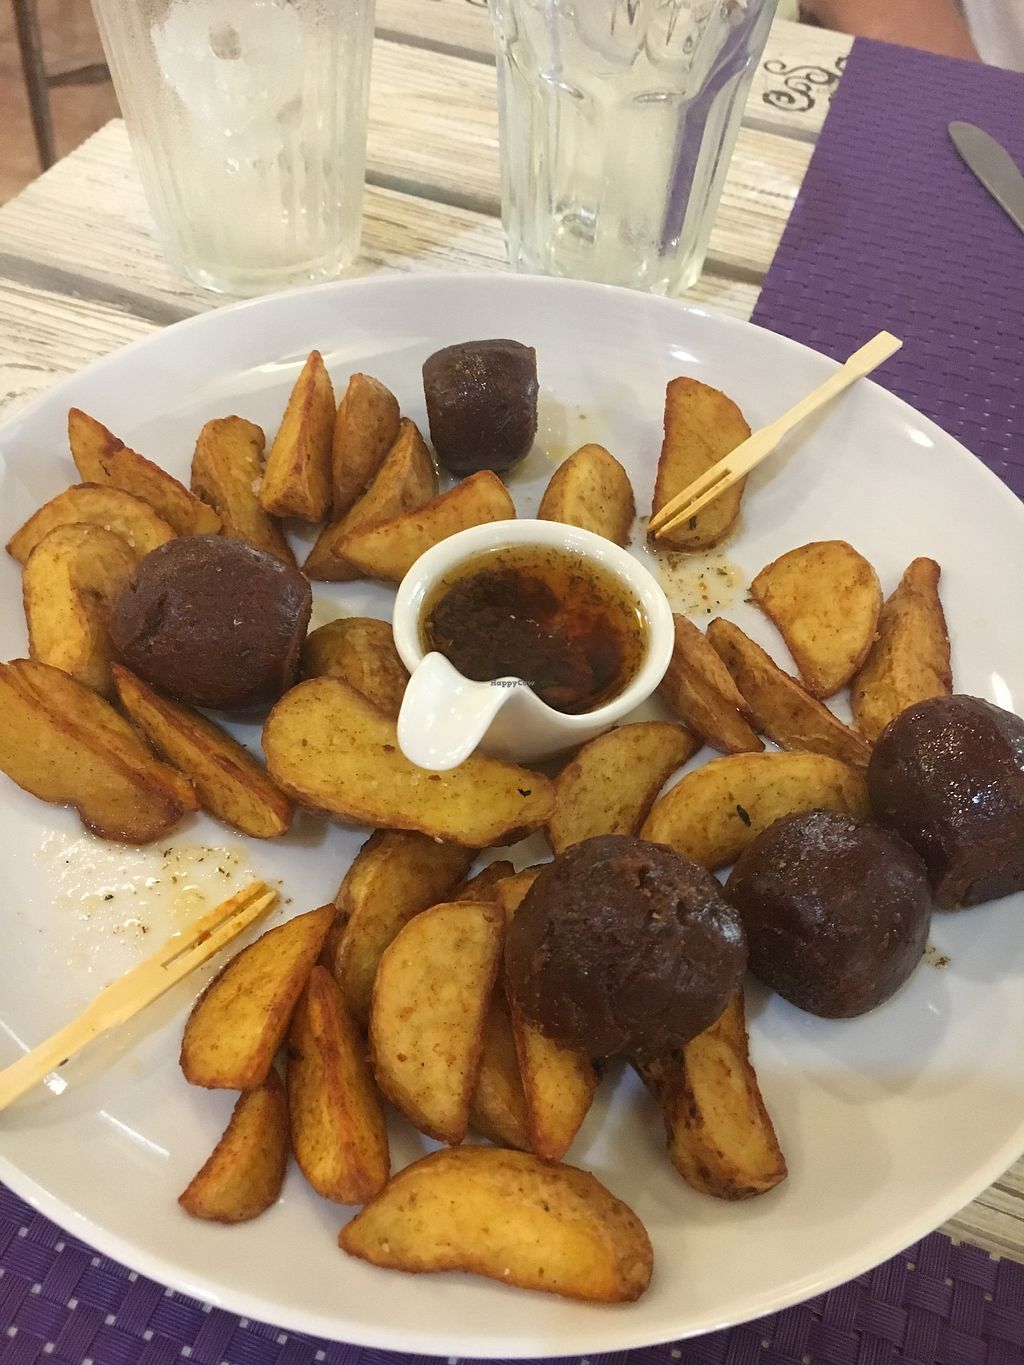 """Photo of Acai  by <a href=""""/members/profile/JasmineB%C3%B6rlin"""">JasmineBörlin</a> <br/>Some sort of typical spanish """"sausage"""" made of seitan <br/> August 23, 2017  - <a href='/contact/abuse/image/73437/296482'>Report</a>"""